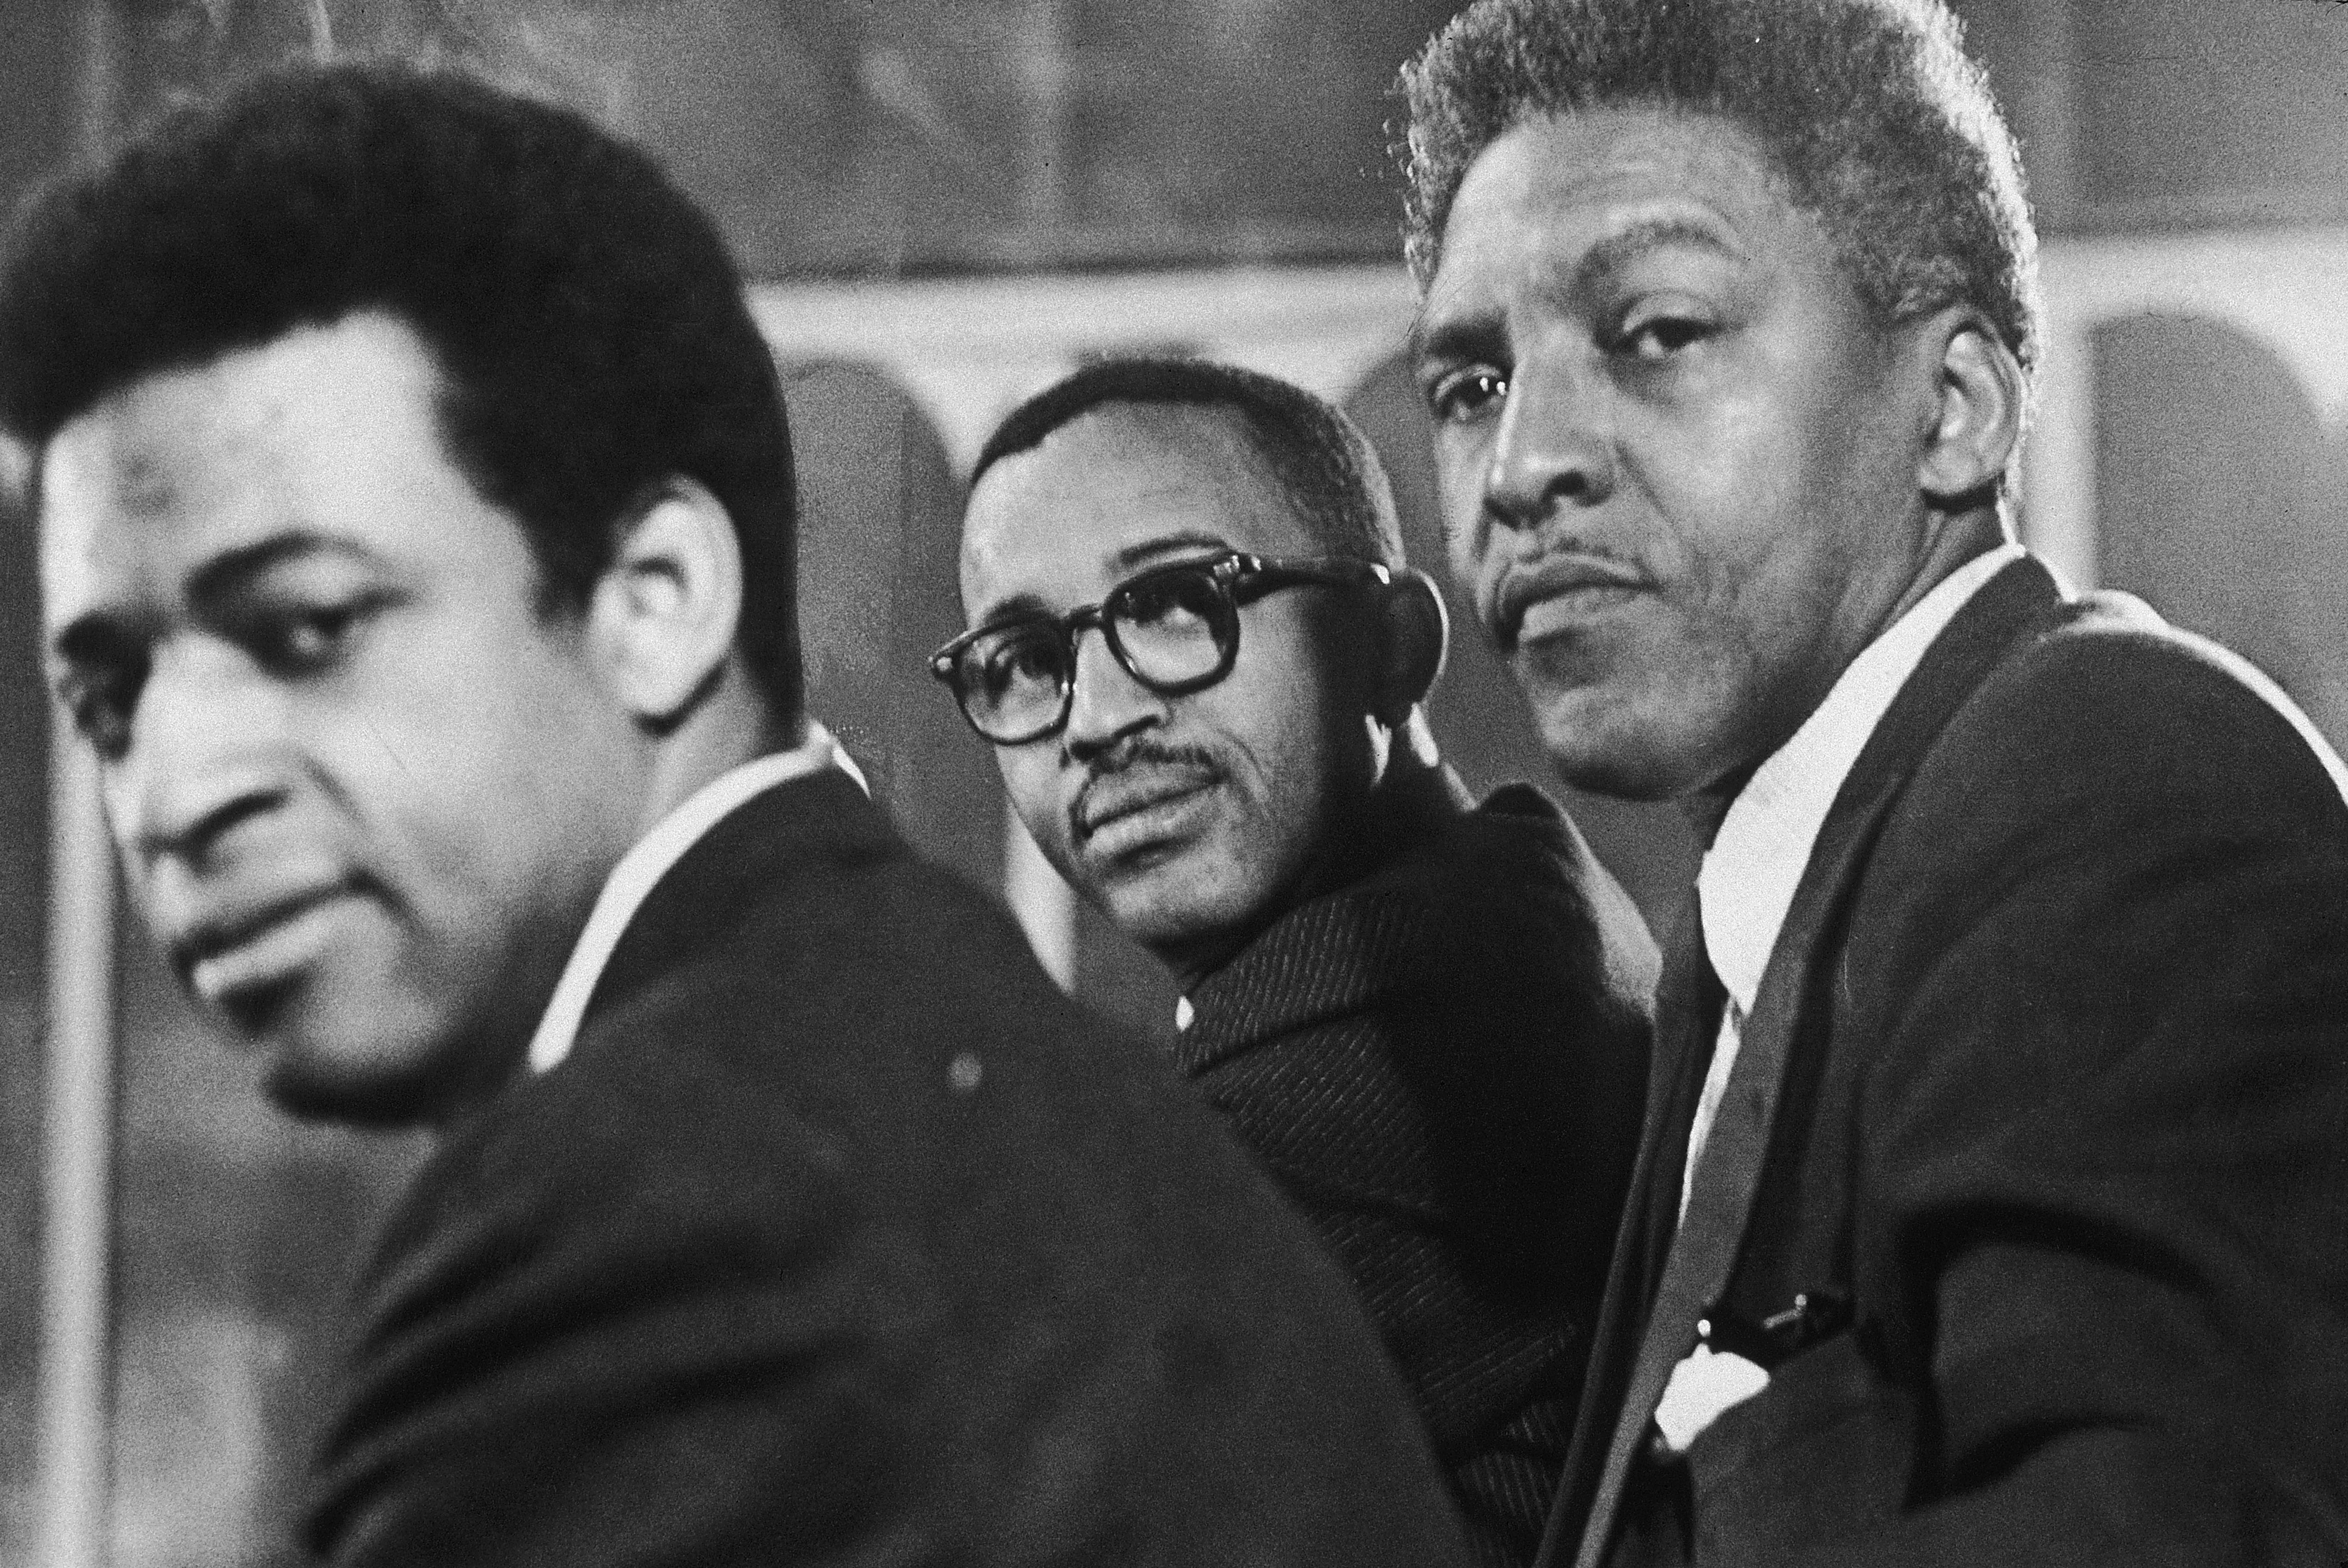 Civil rights activists Norman Hill, Bayard Rustin and Frederick D. Jones, in 1964